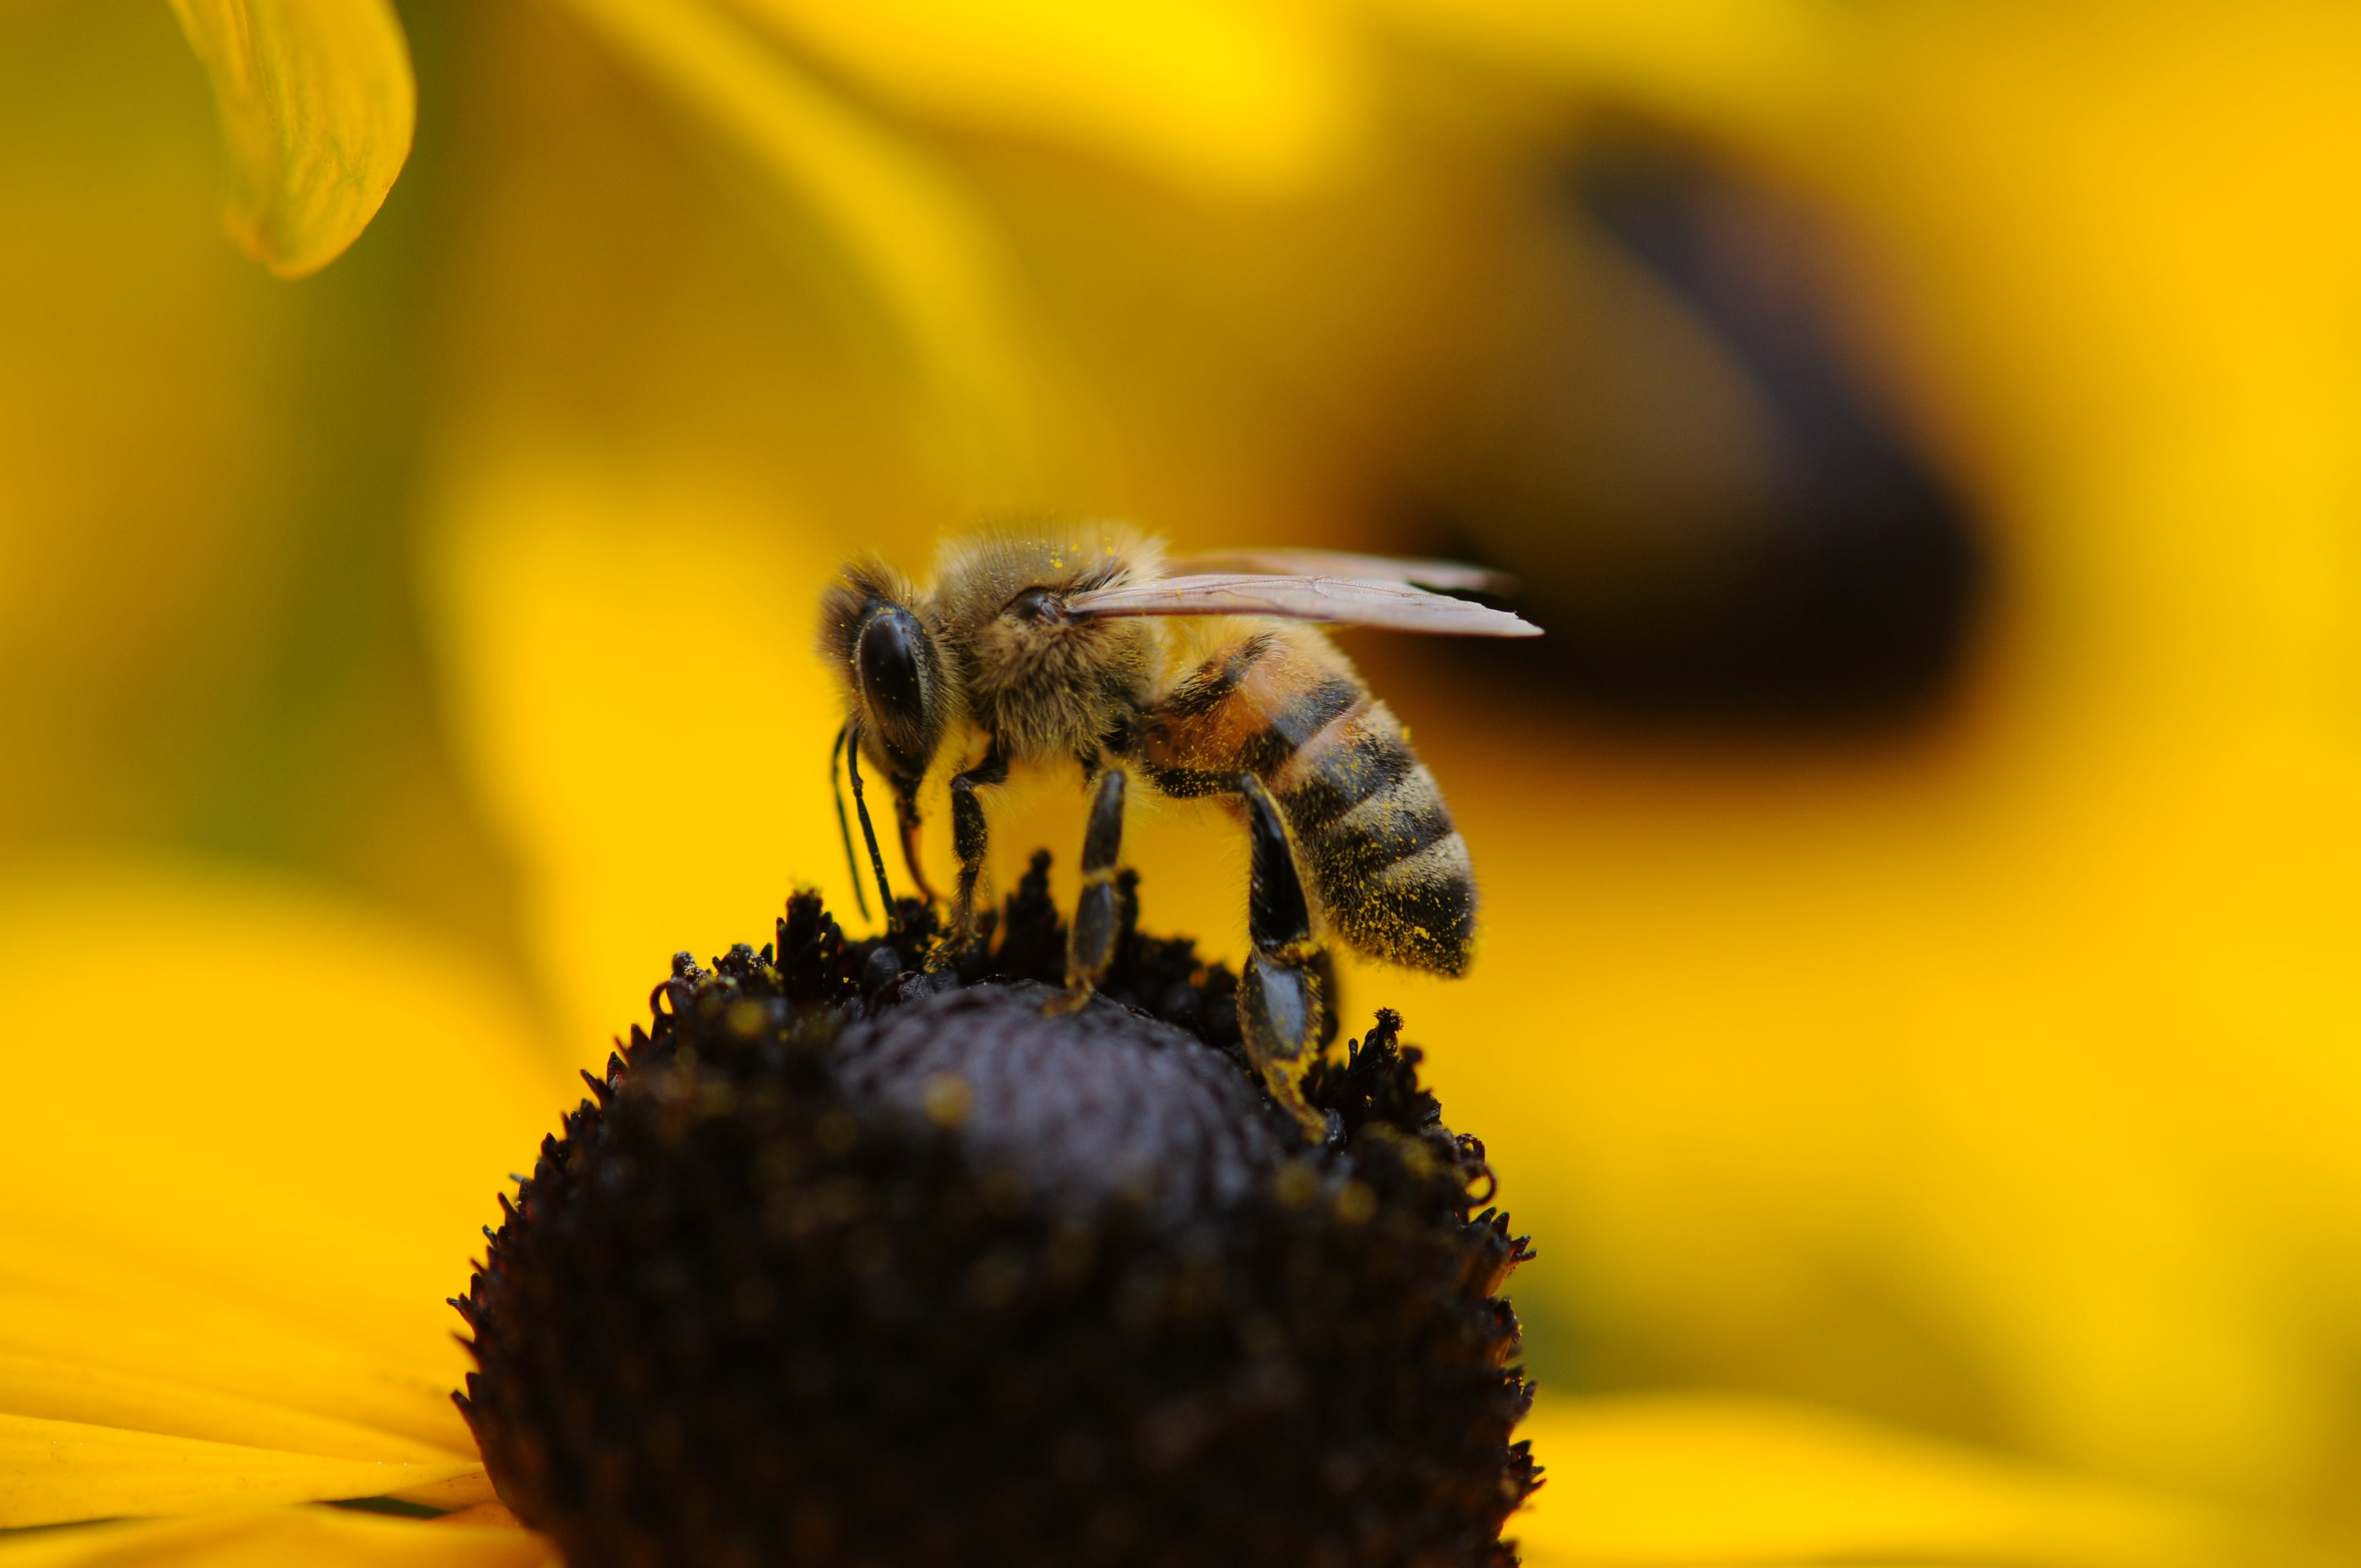 Tilt Shift Lens Photography of Yellow and Black Bee